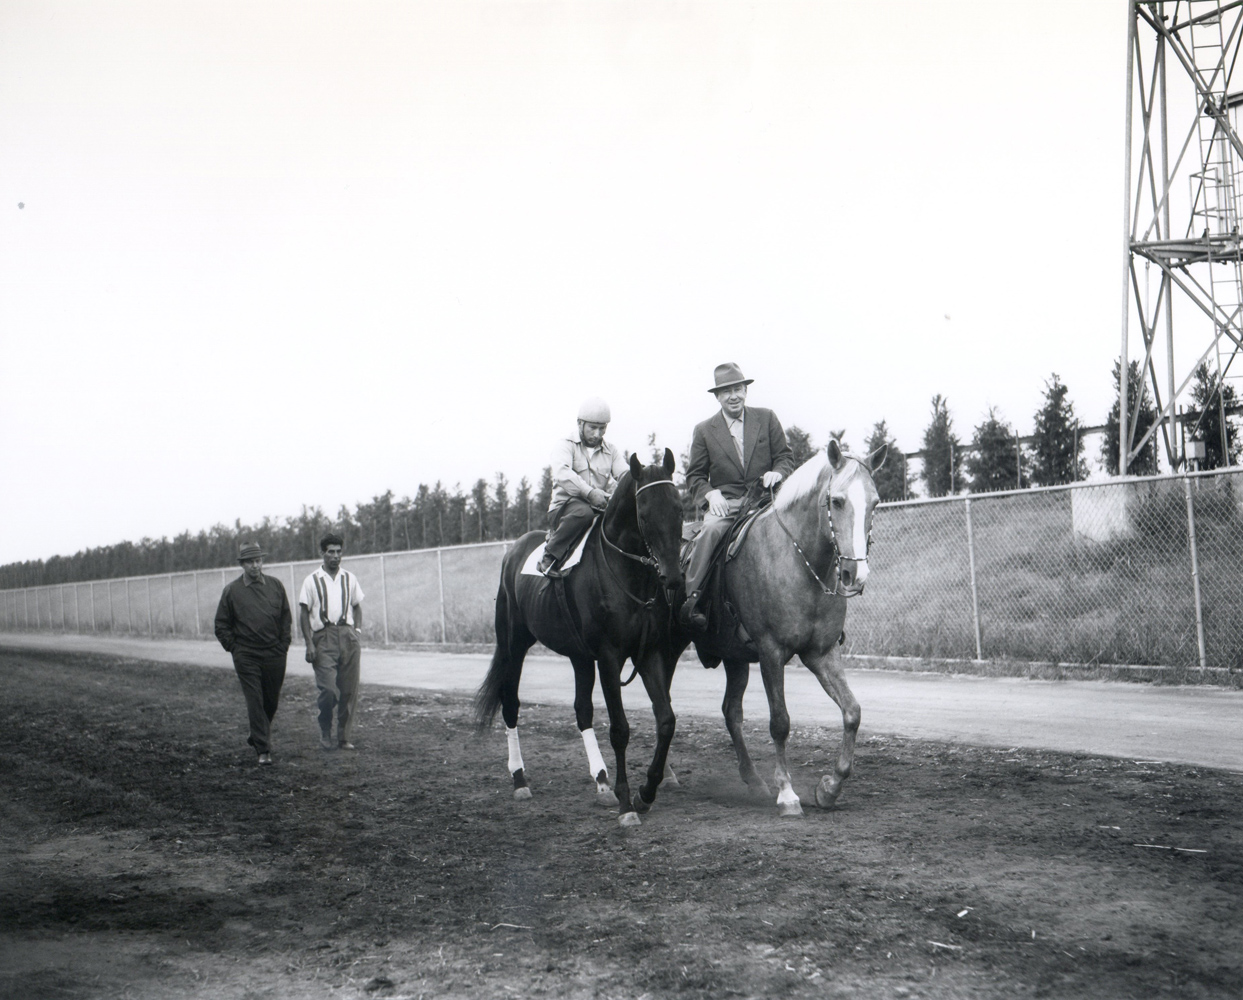 William Molter joins Round Table on the track for training (Keeneland Library Morgan Collection/Museum Collection)